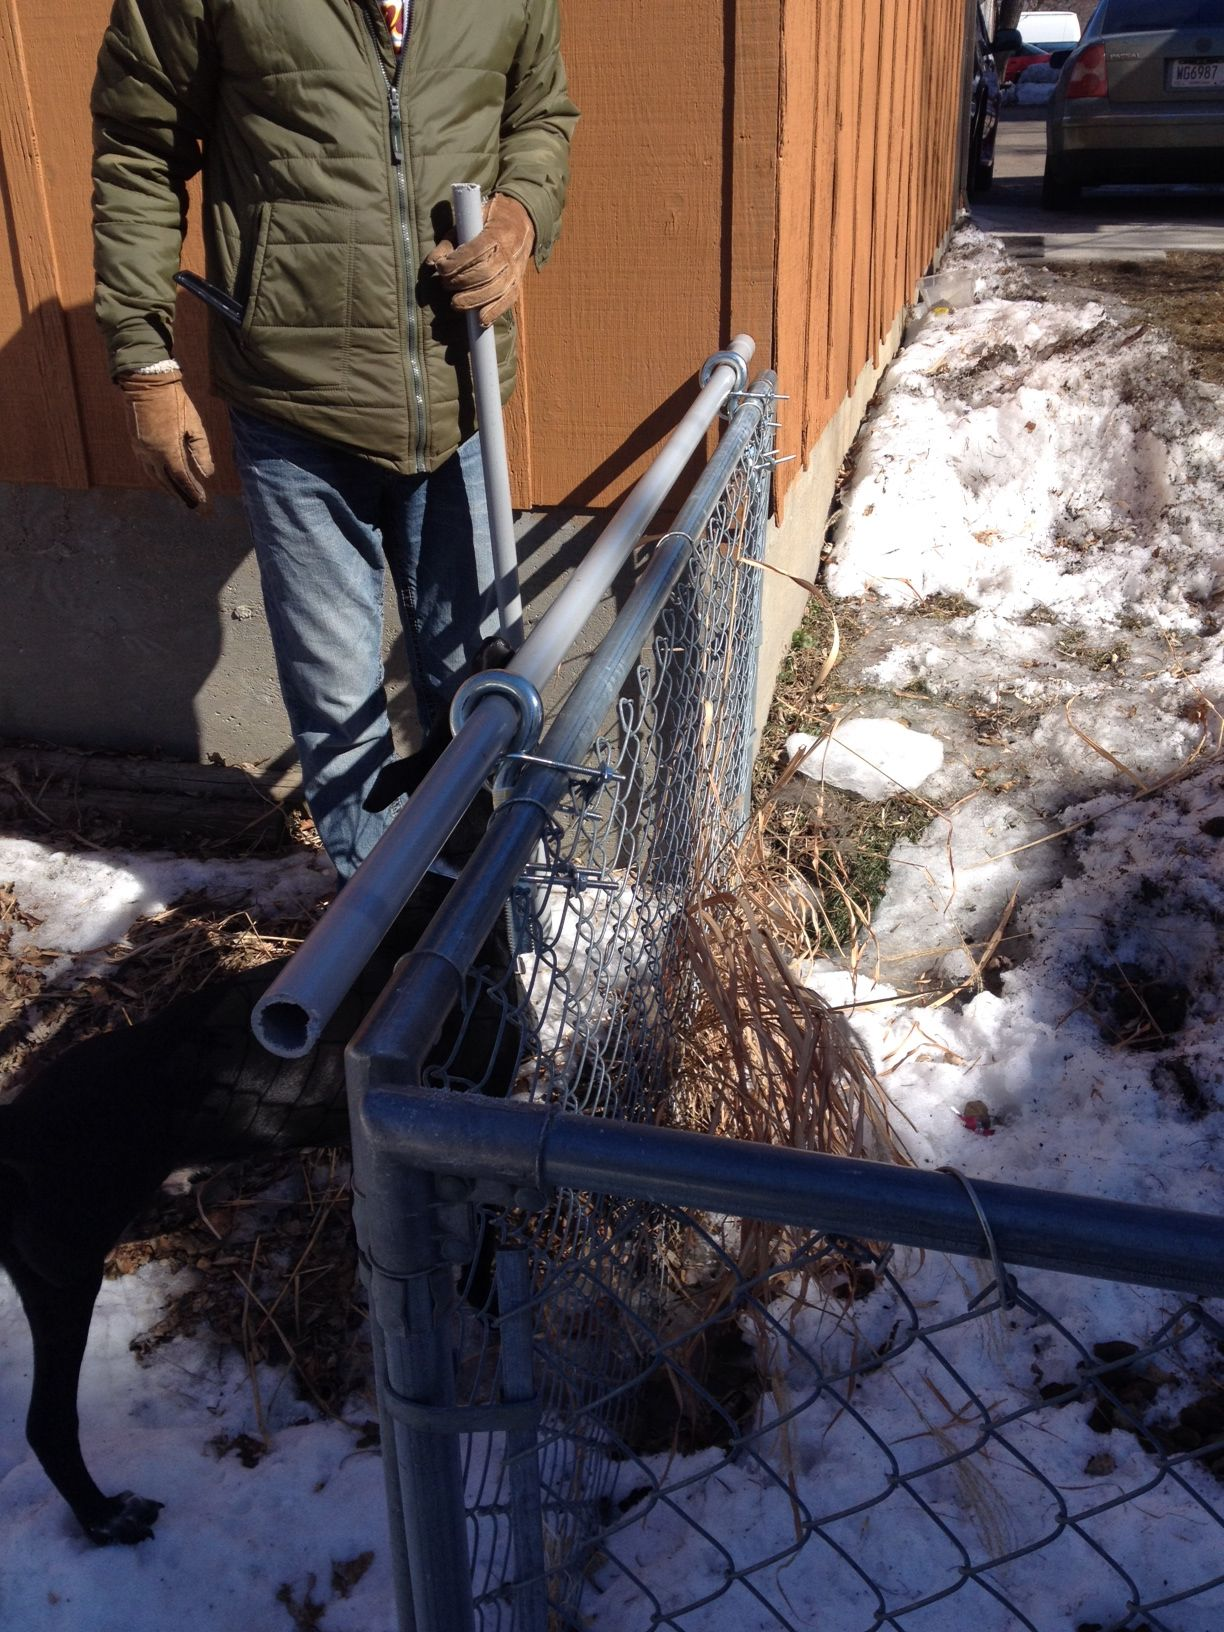 DIY dogproof fence topper / coyote roller Dog proof